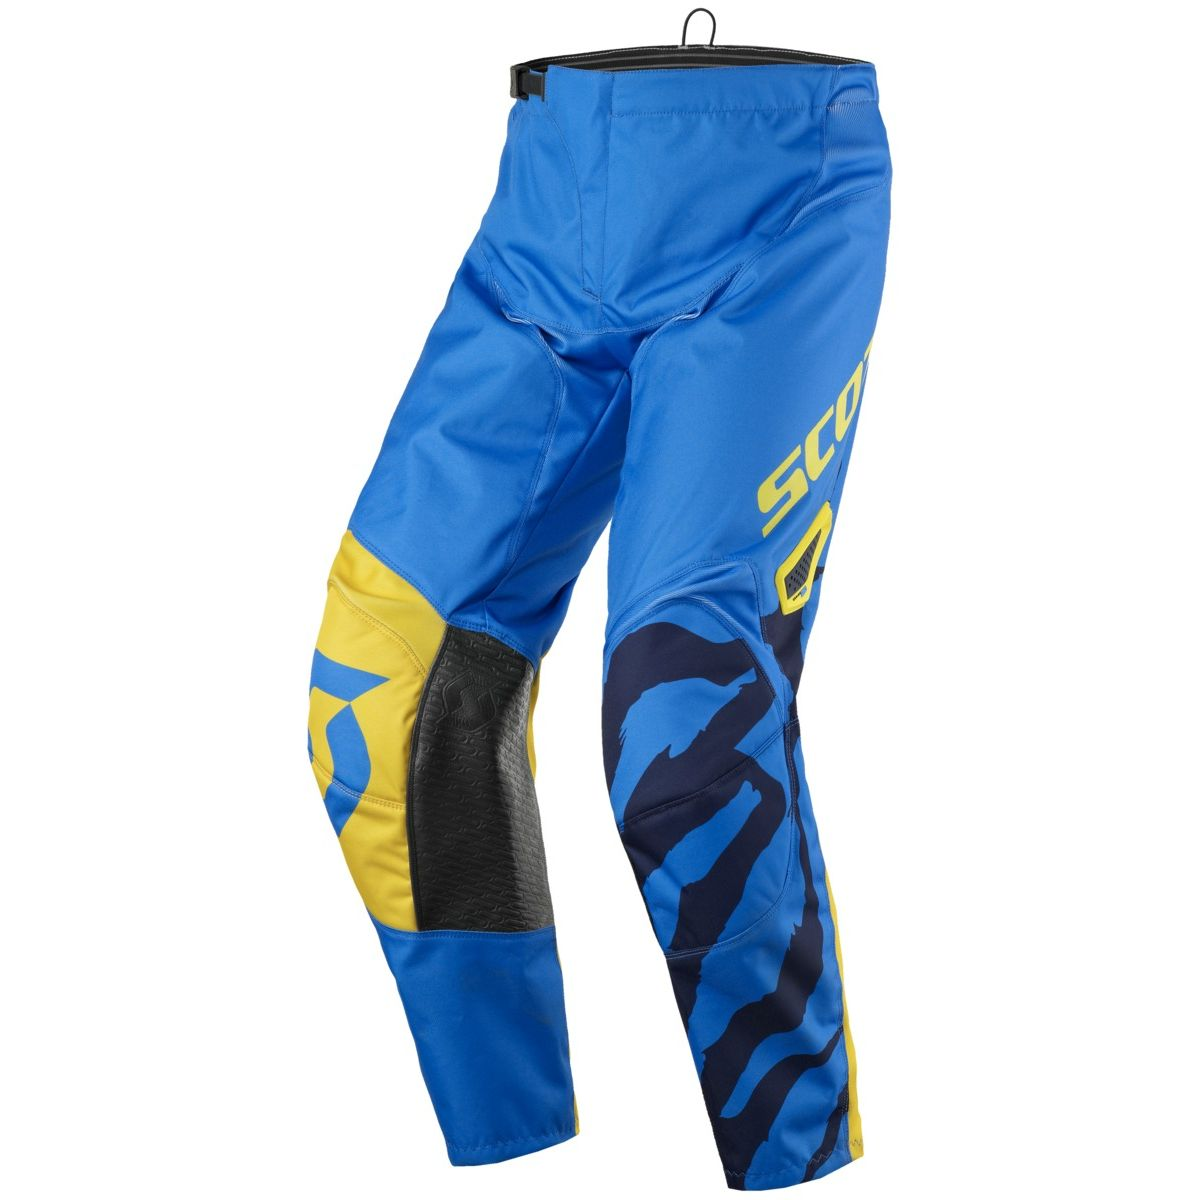 Pantalon cross Scott destockage 350 RACE BLUE YELLOW 2017